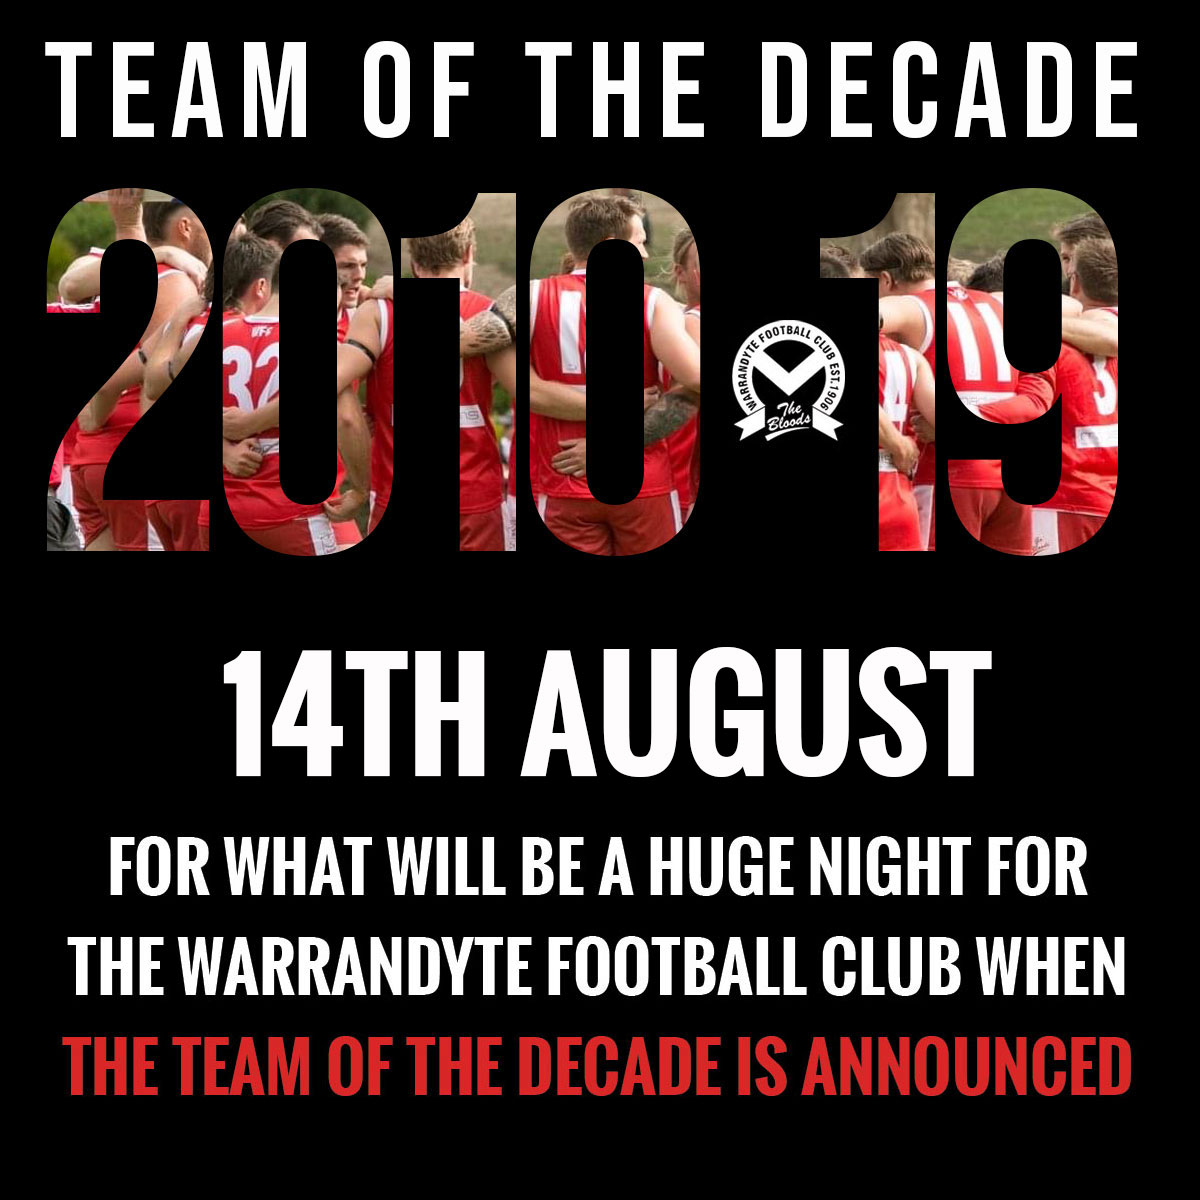 WFC team of the decade 14th August